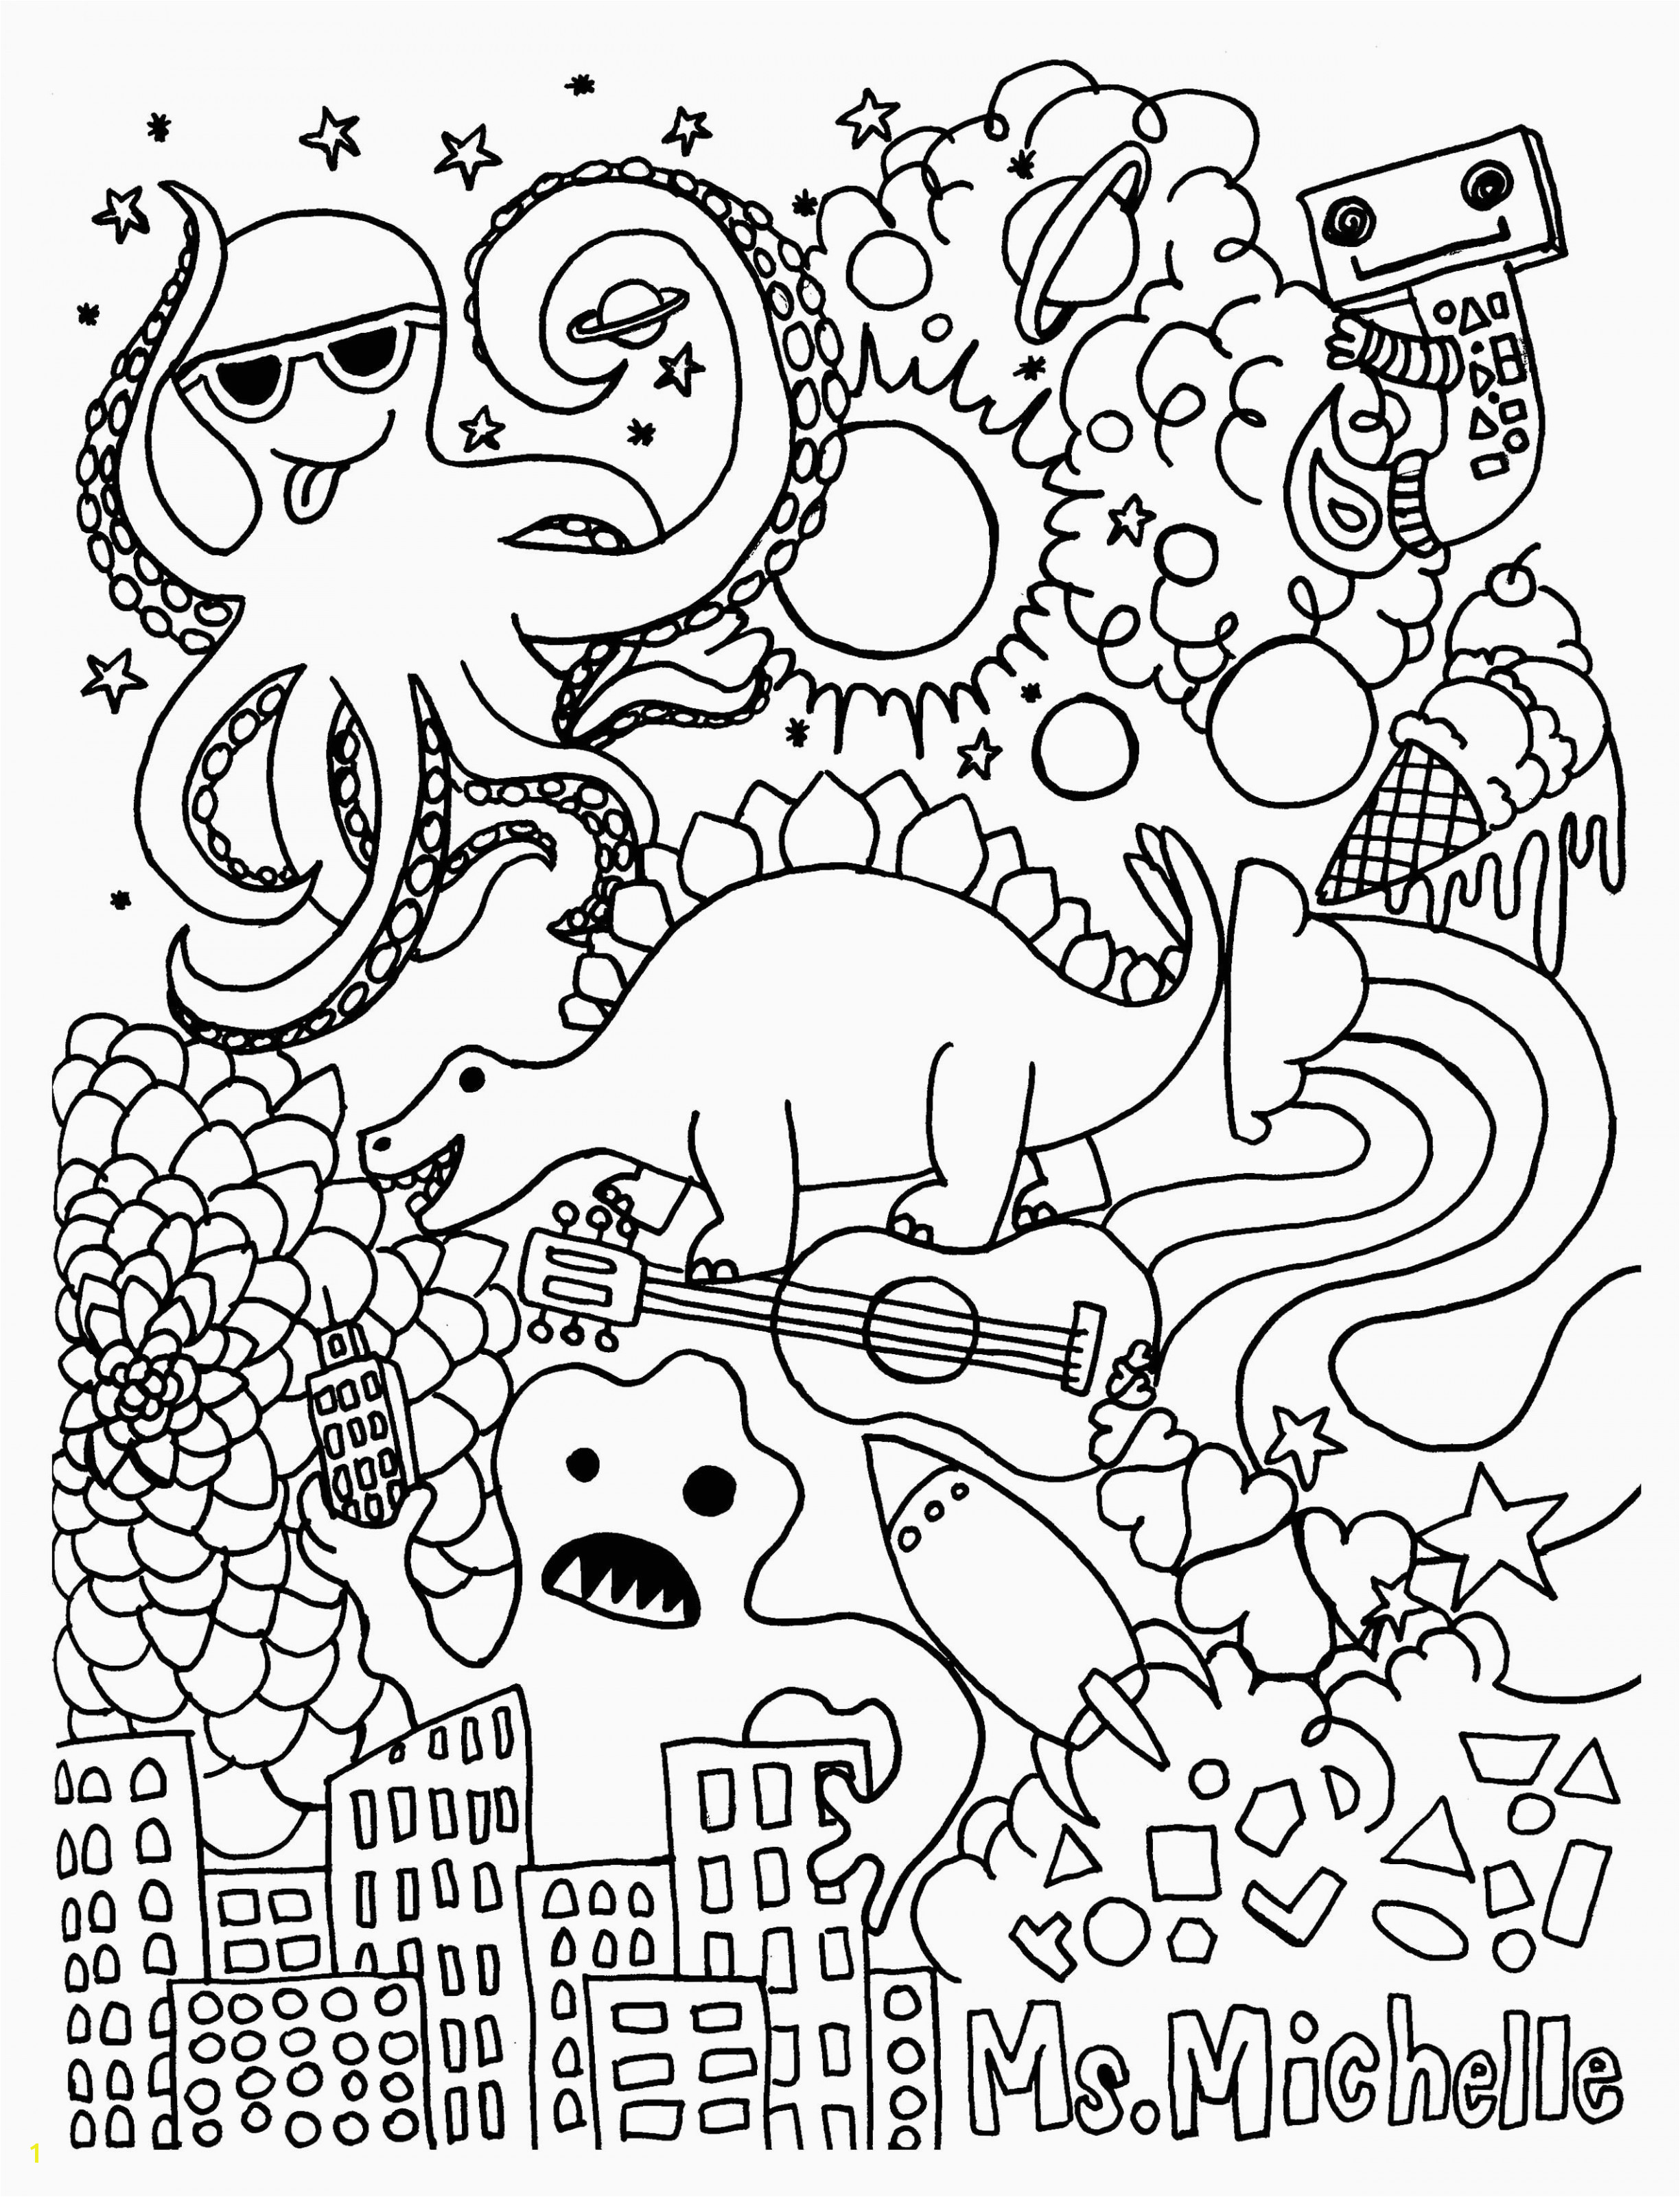 Ghost Coloring Pages Free Coloring Pages for Halloween Unique Best Coloring Page Adult Od